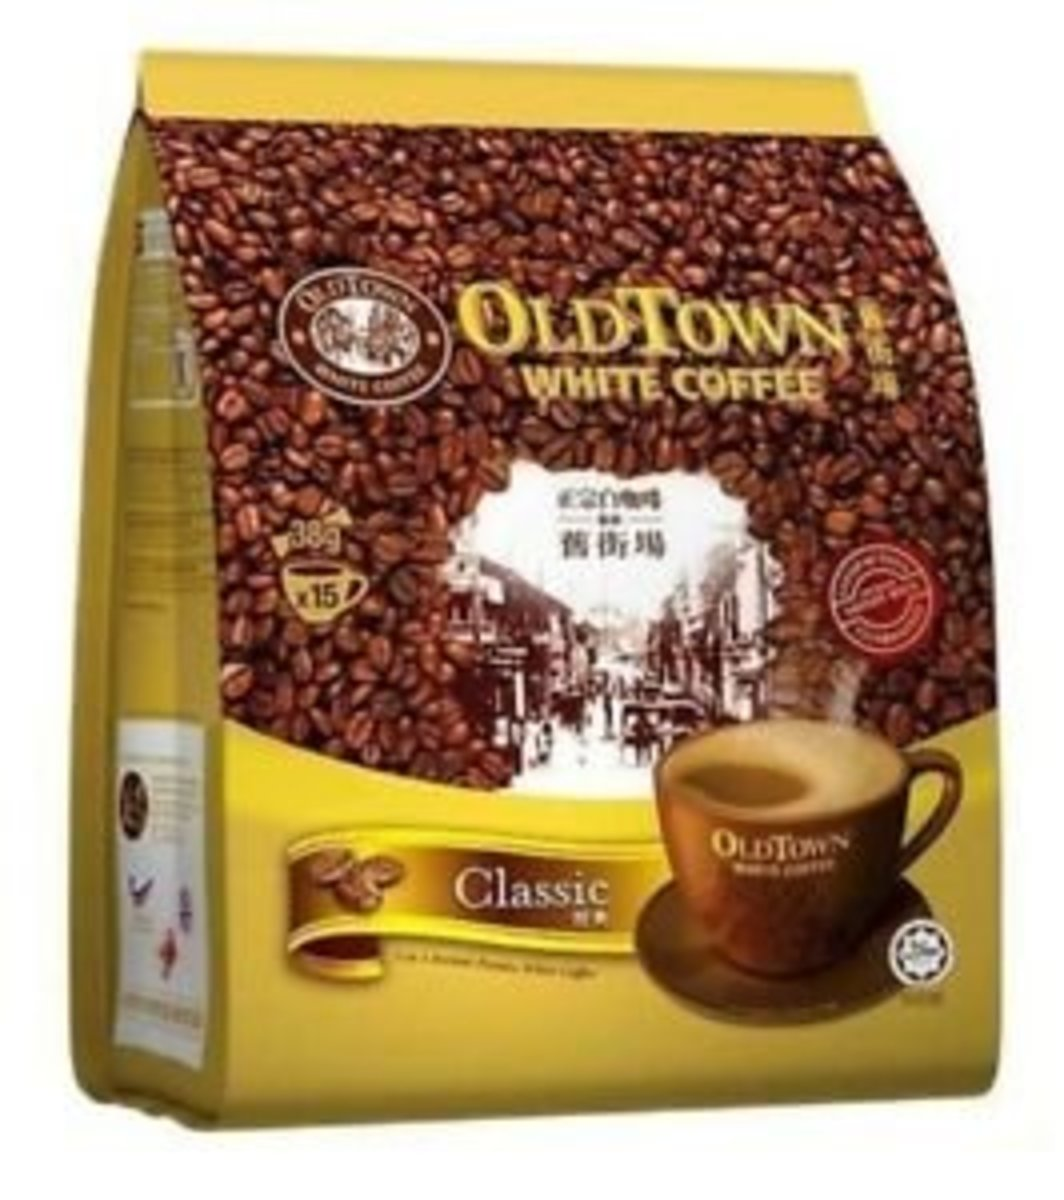 Old Town 3 In 1 Classic White Coffee(Parallel import)